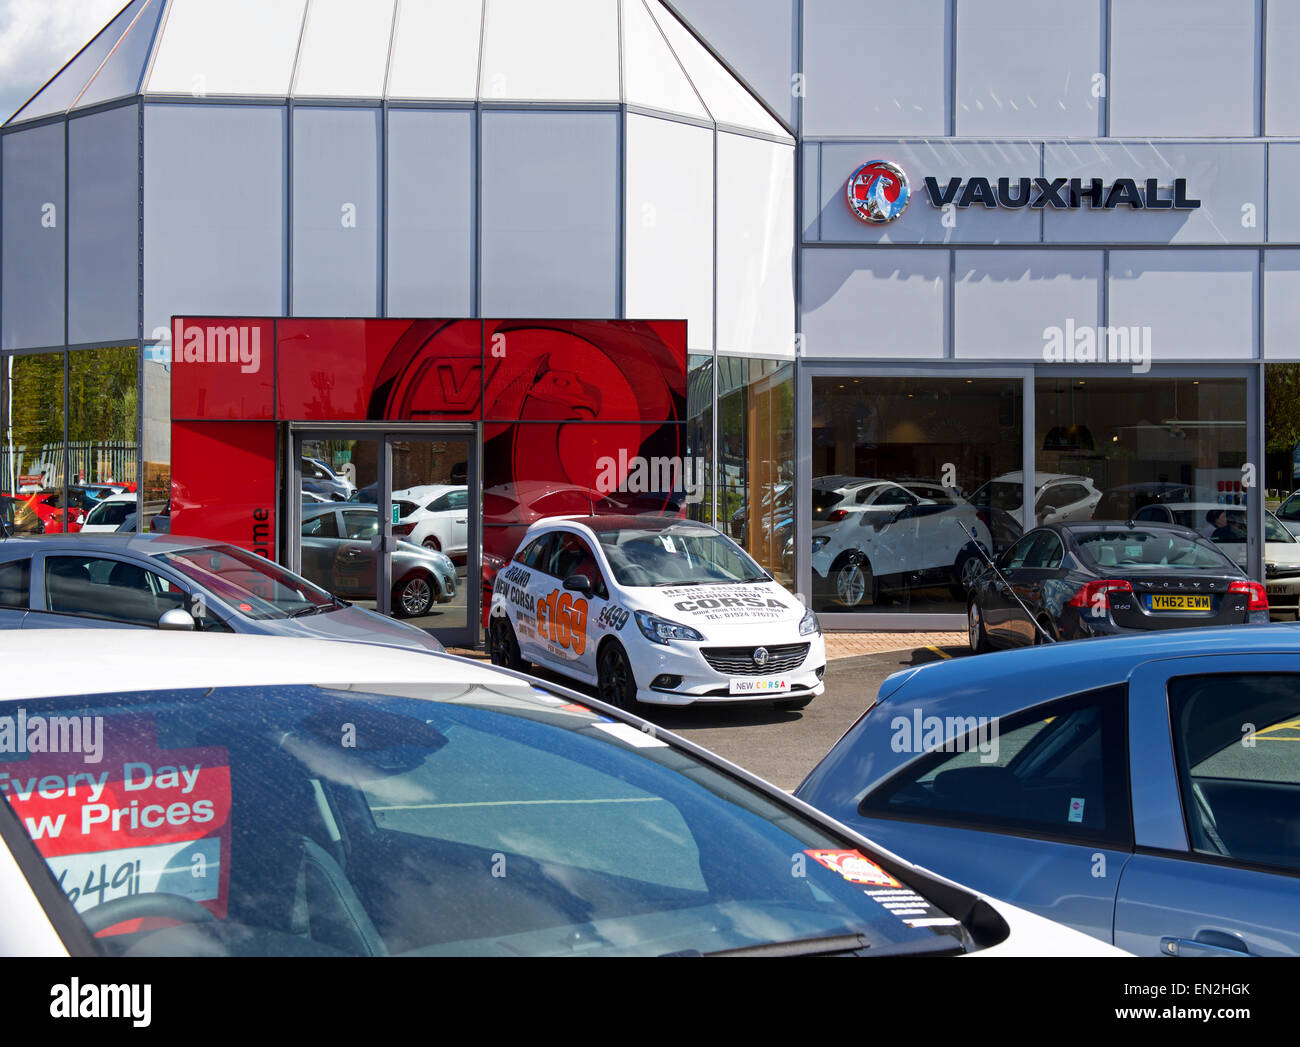 Vauxhall car dealership in Wakefield, West Yorkshire, England UK - Stock Image